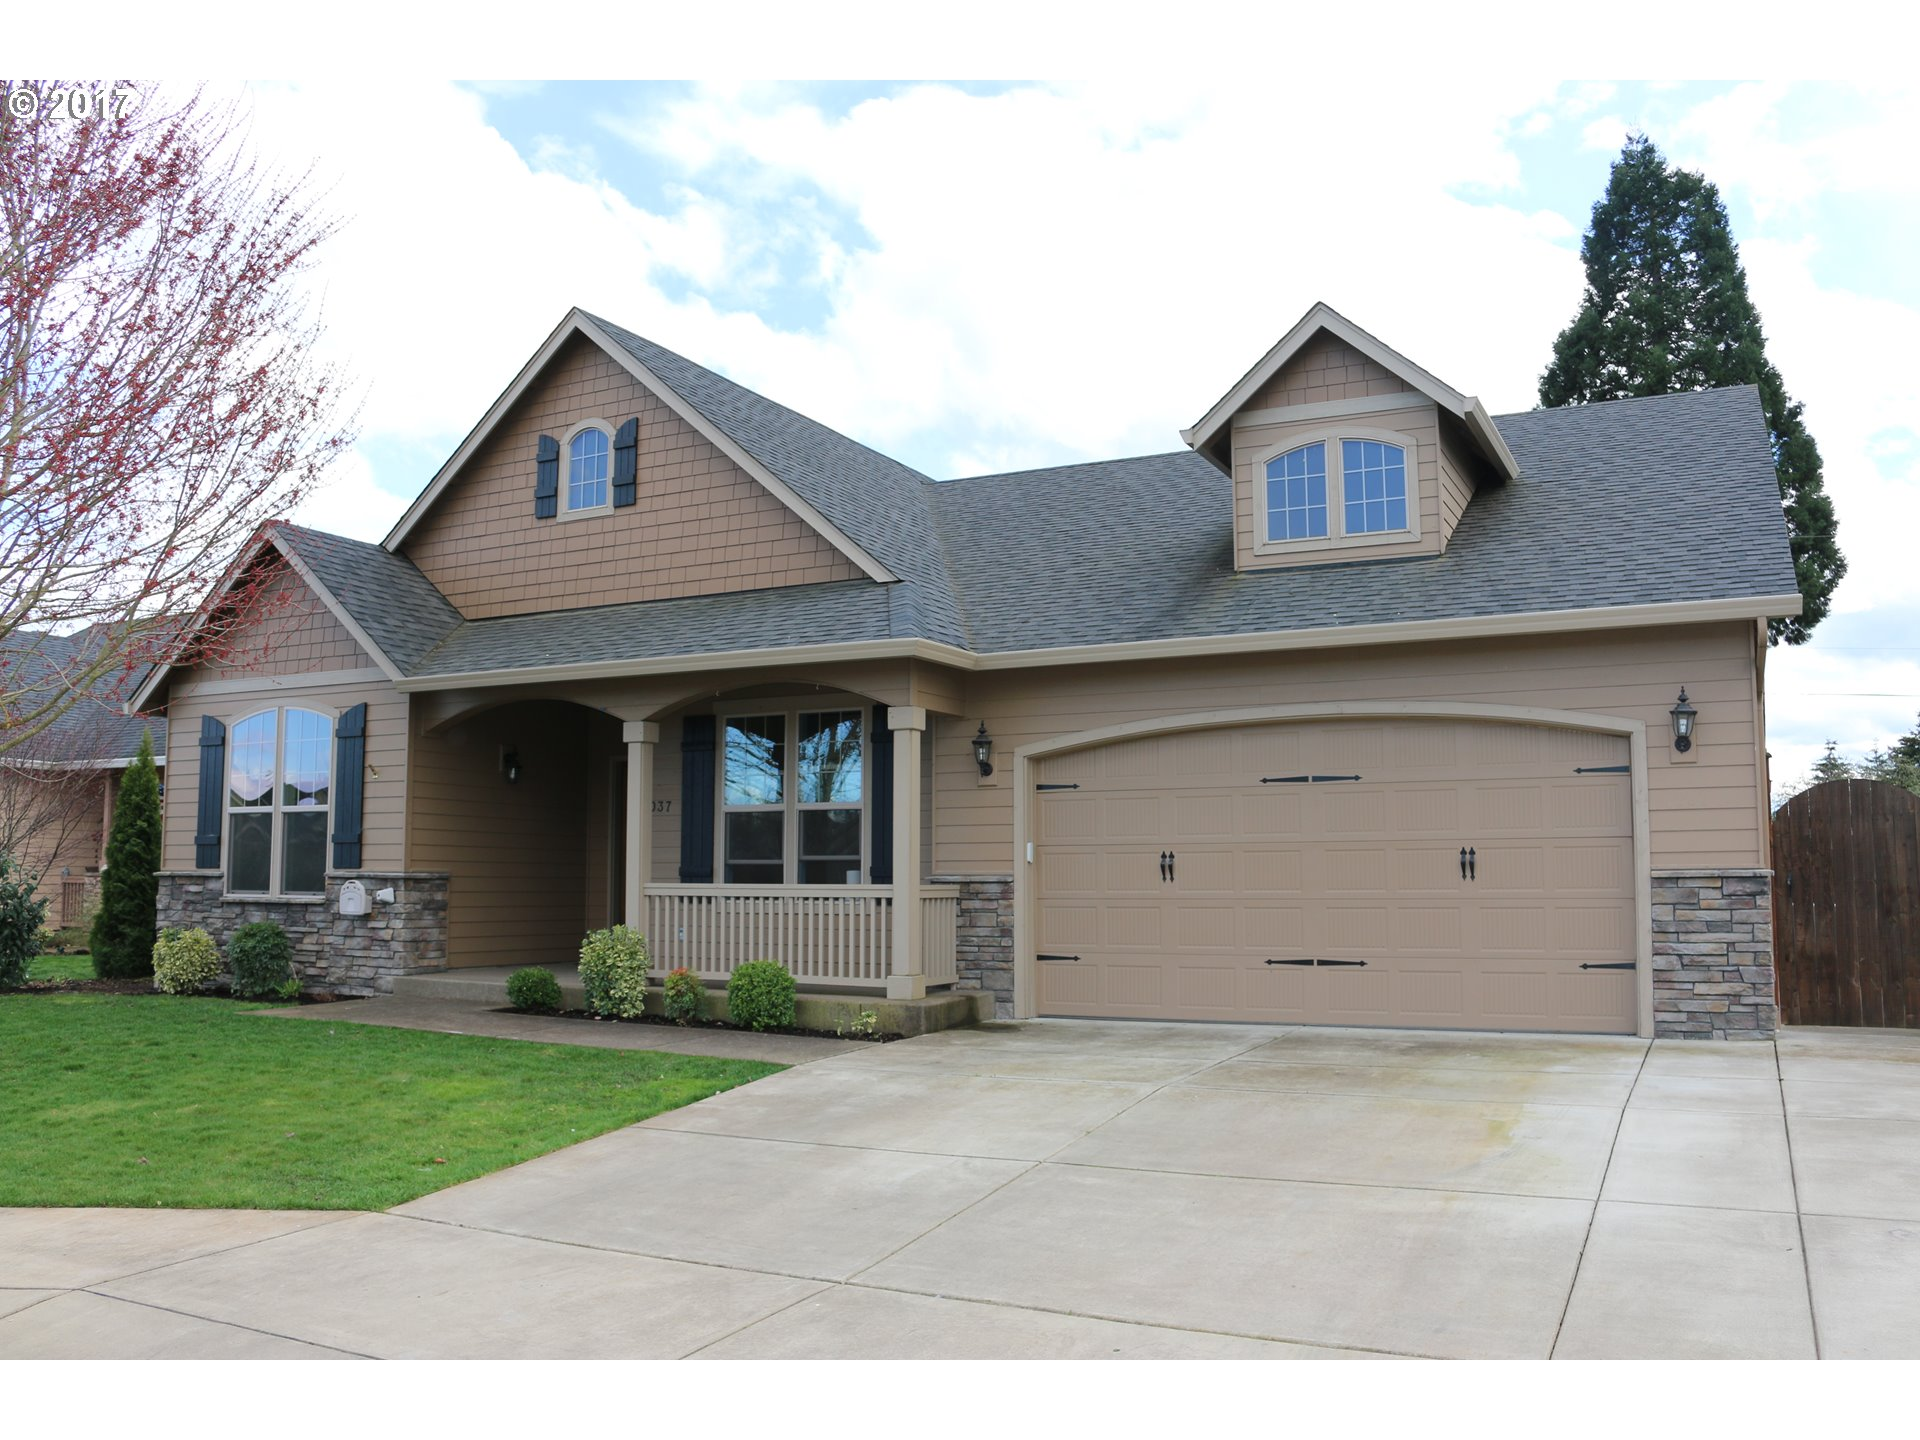 1037 KAYLEE AVE, Junction City, OR 97448